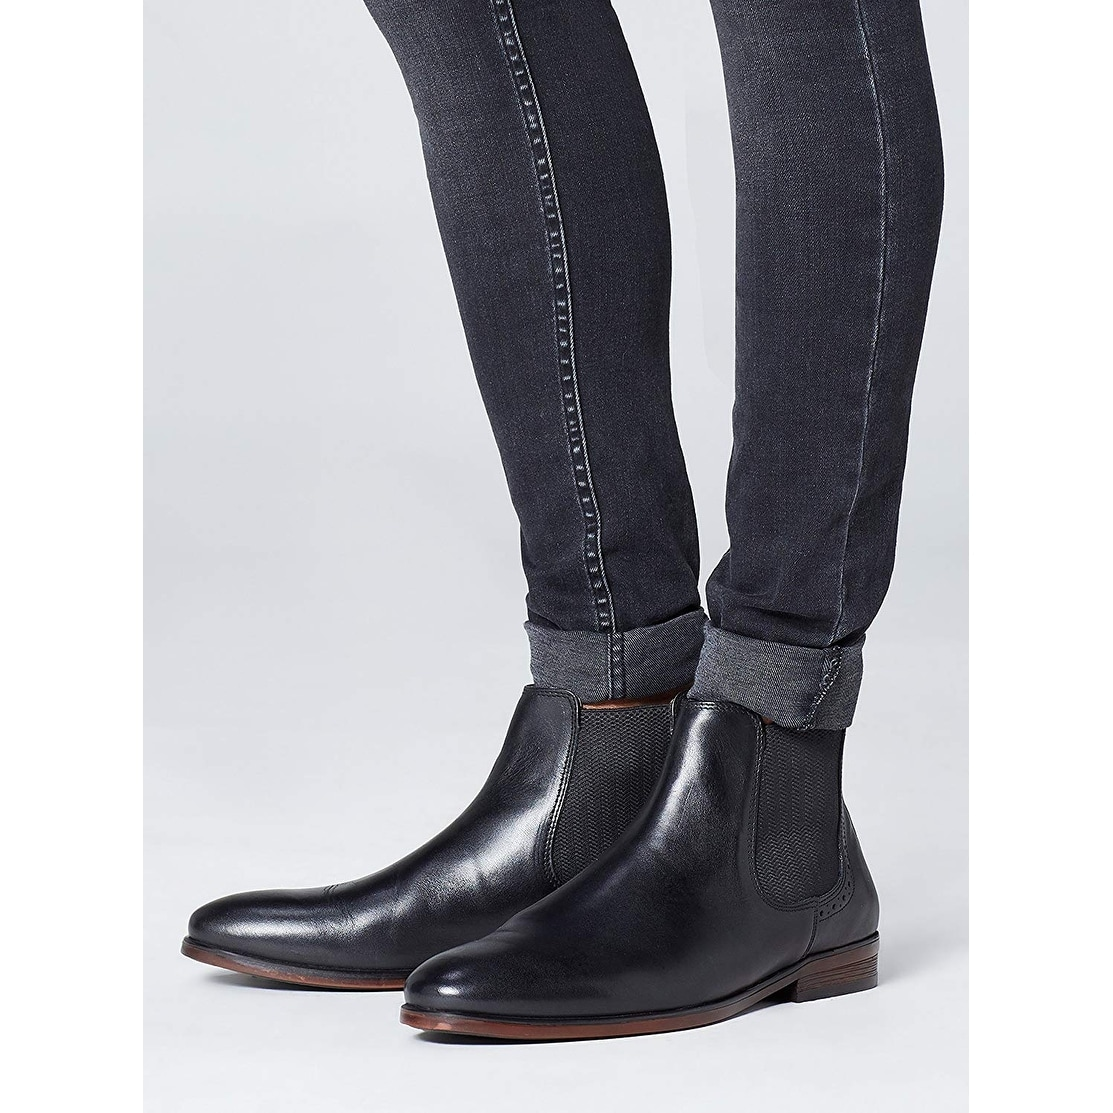 Marin Leather find Brand Men/'s Chelsea Boots